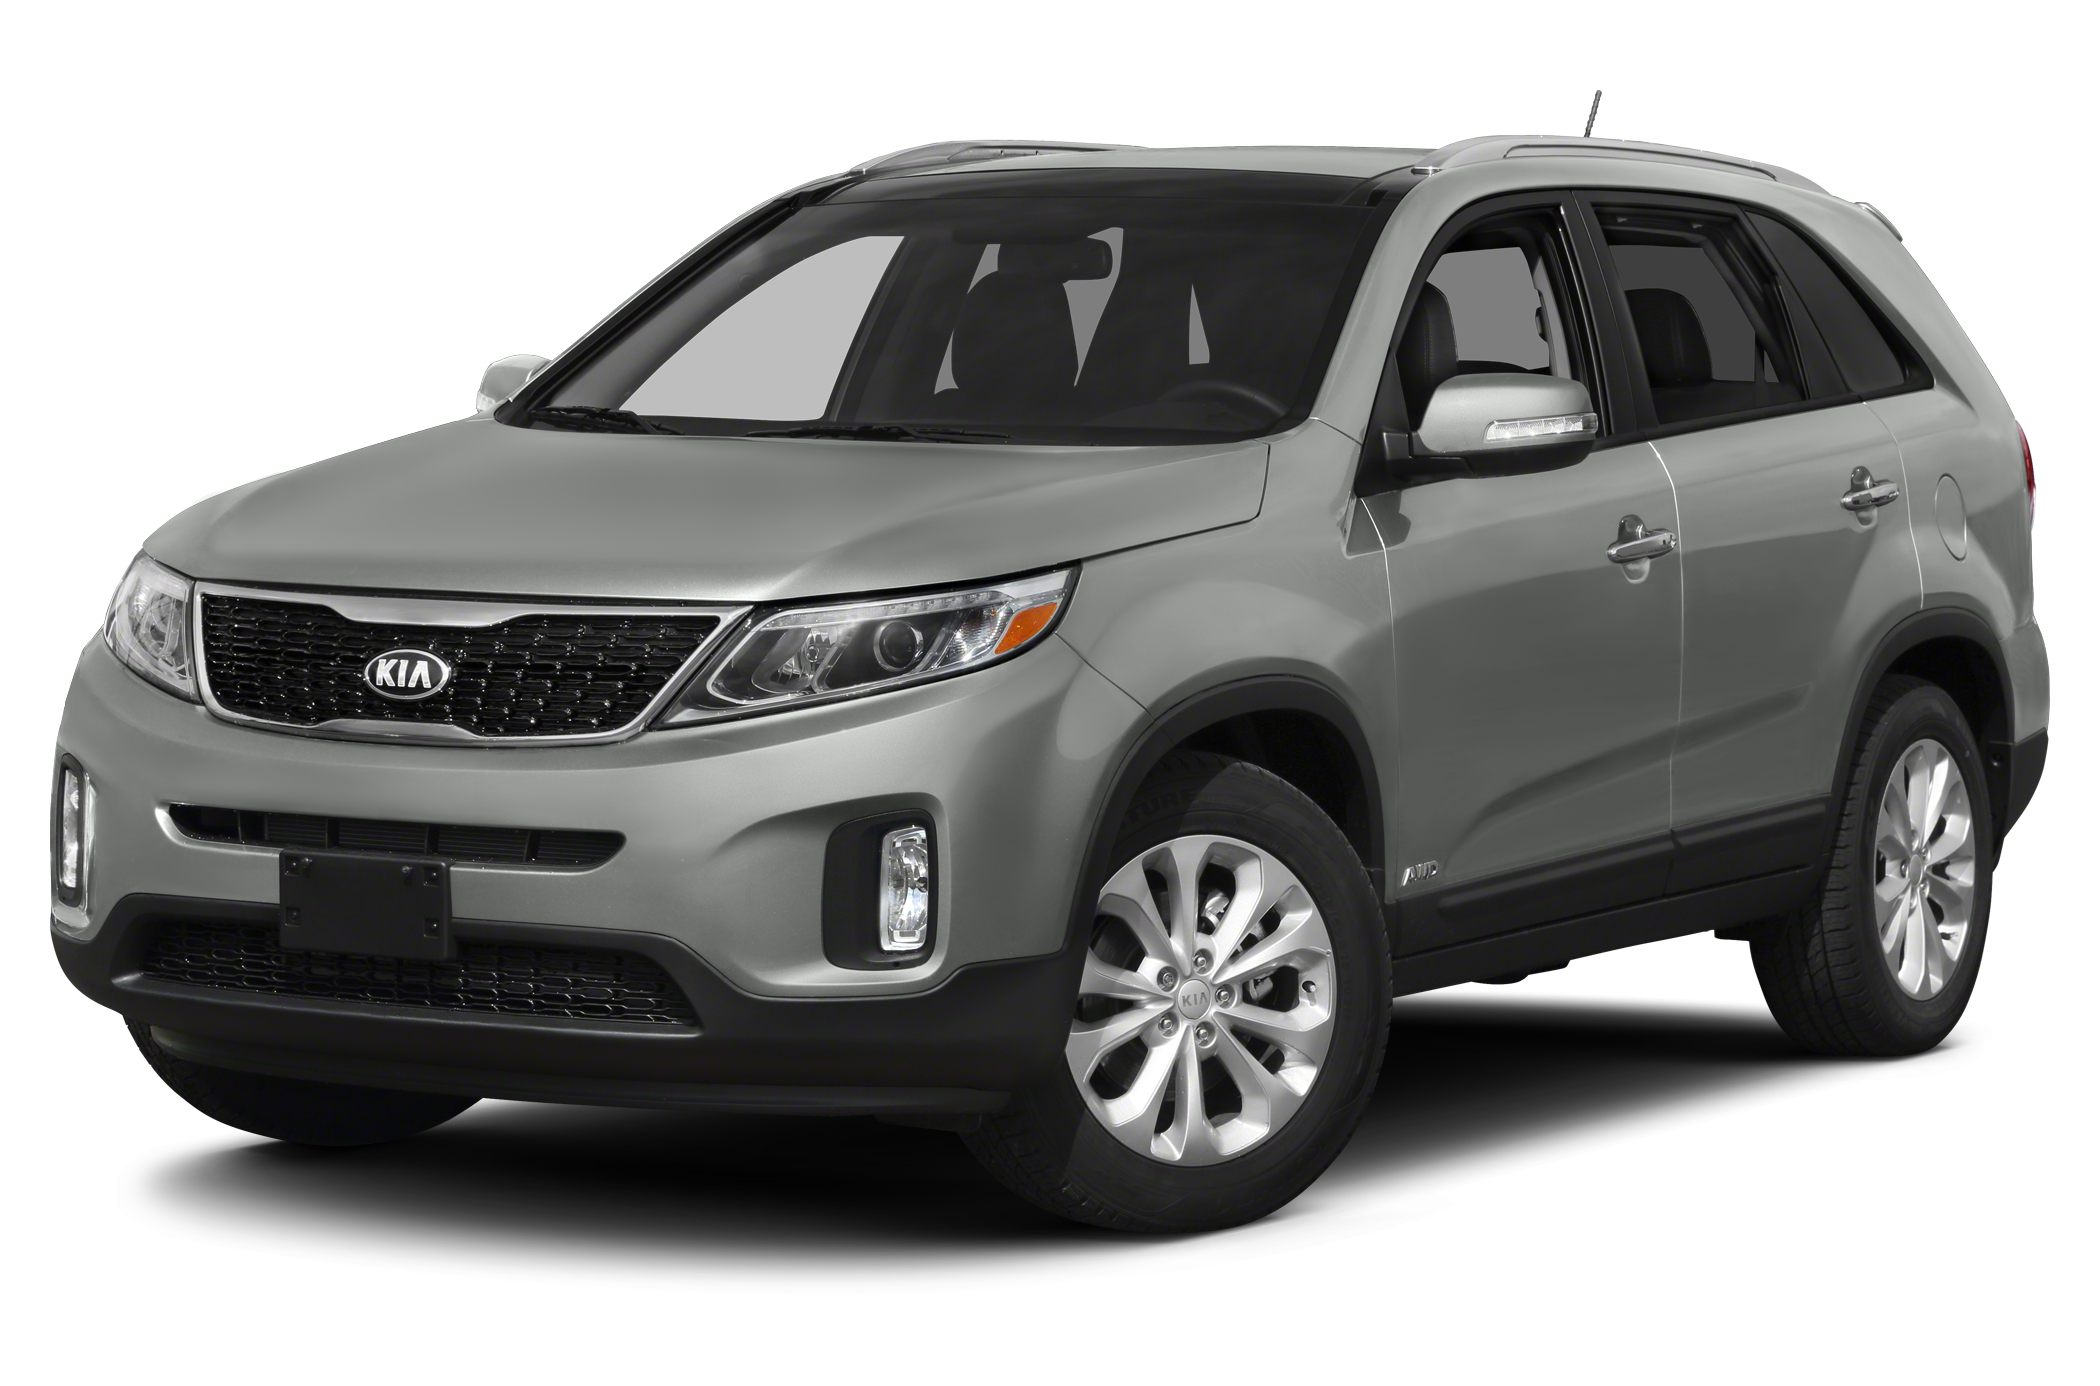 utility in sport new suv awd kendall nampa sorento inventory kia vehicle lx